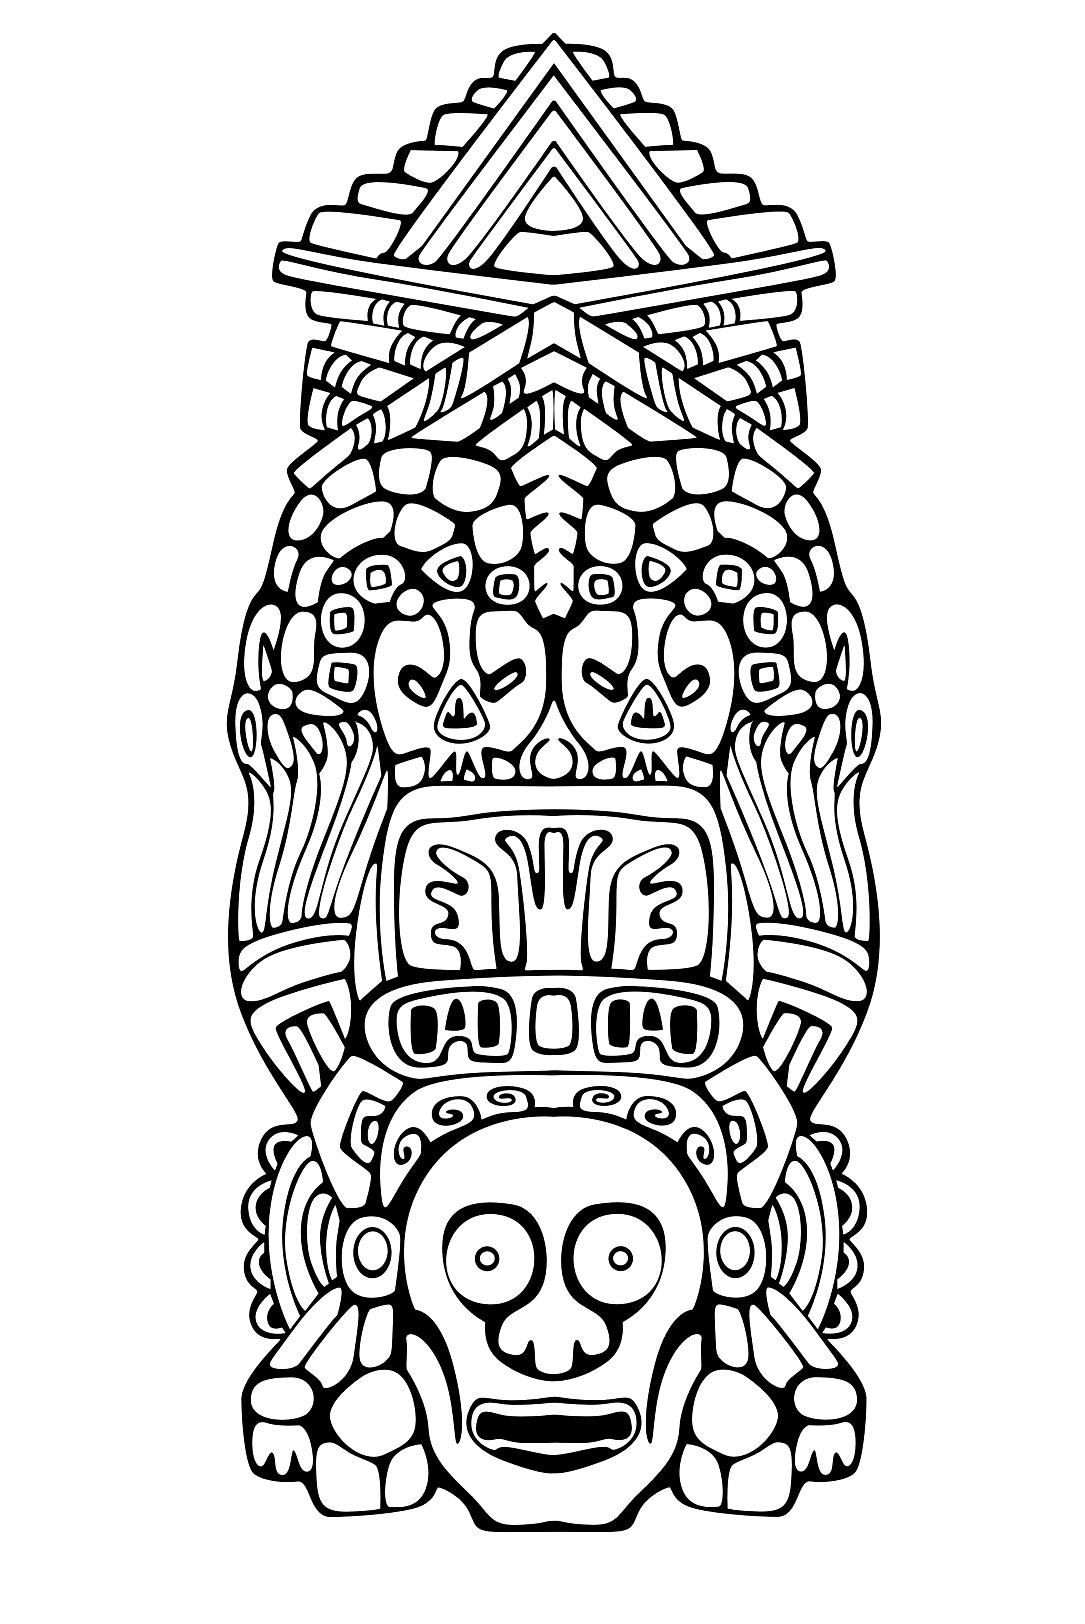 Beautiful Masks coloring page to print and color